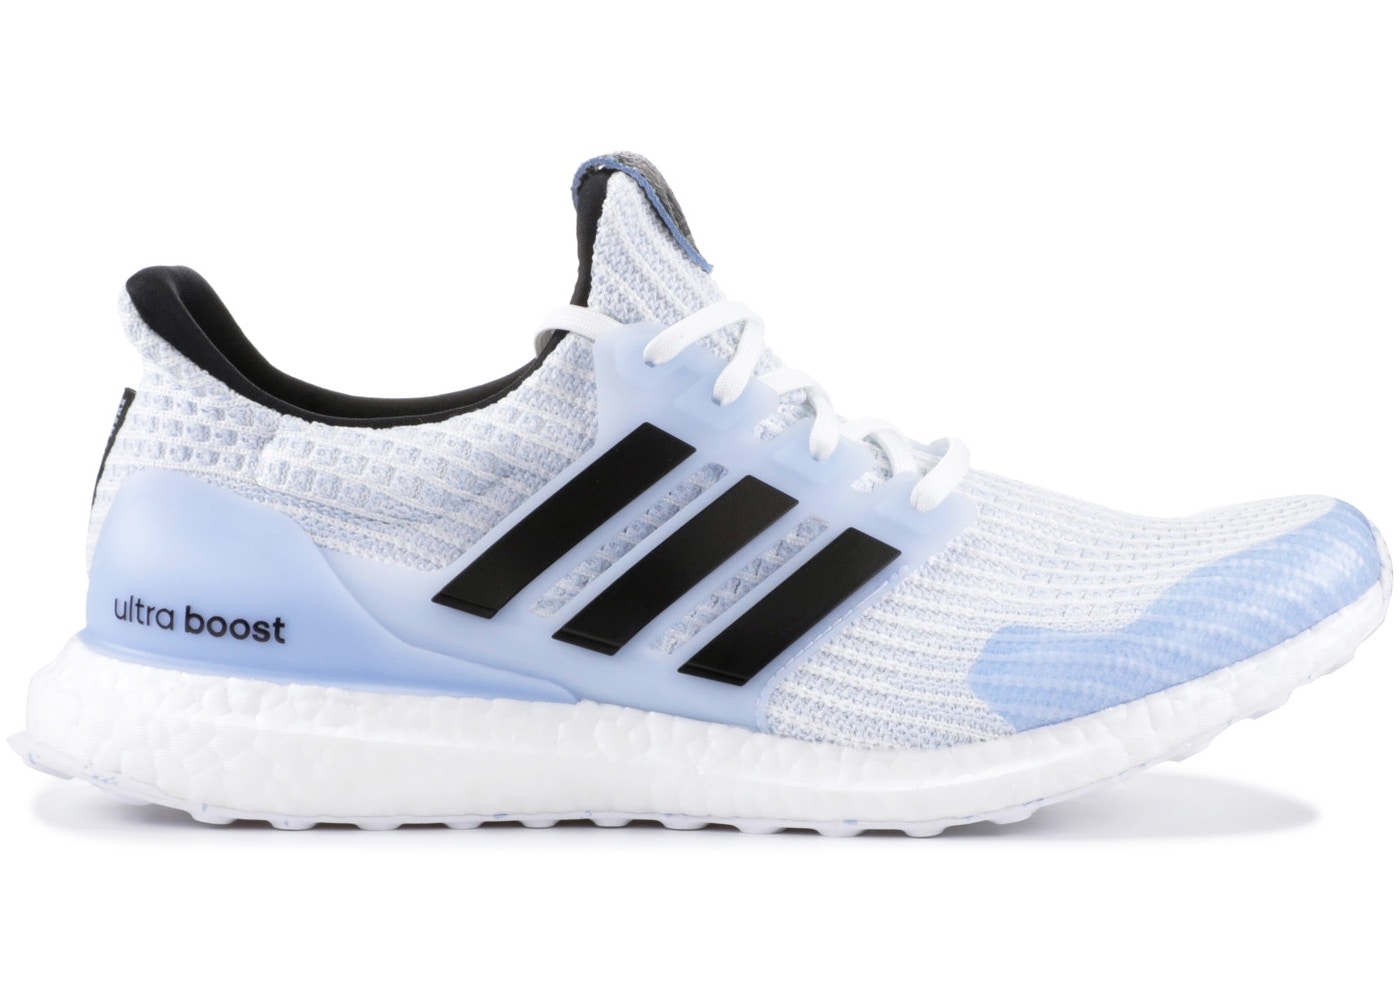 5c65ce4e adidas Ultra Boost 4.0 Game of Thrones White Walkers - EE3708